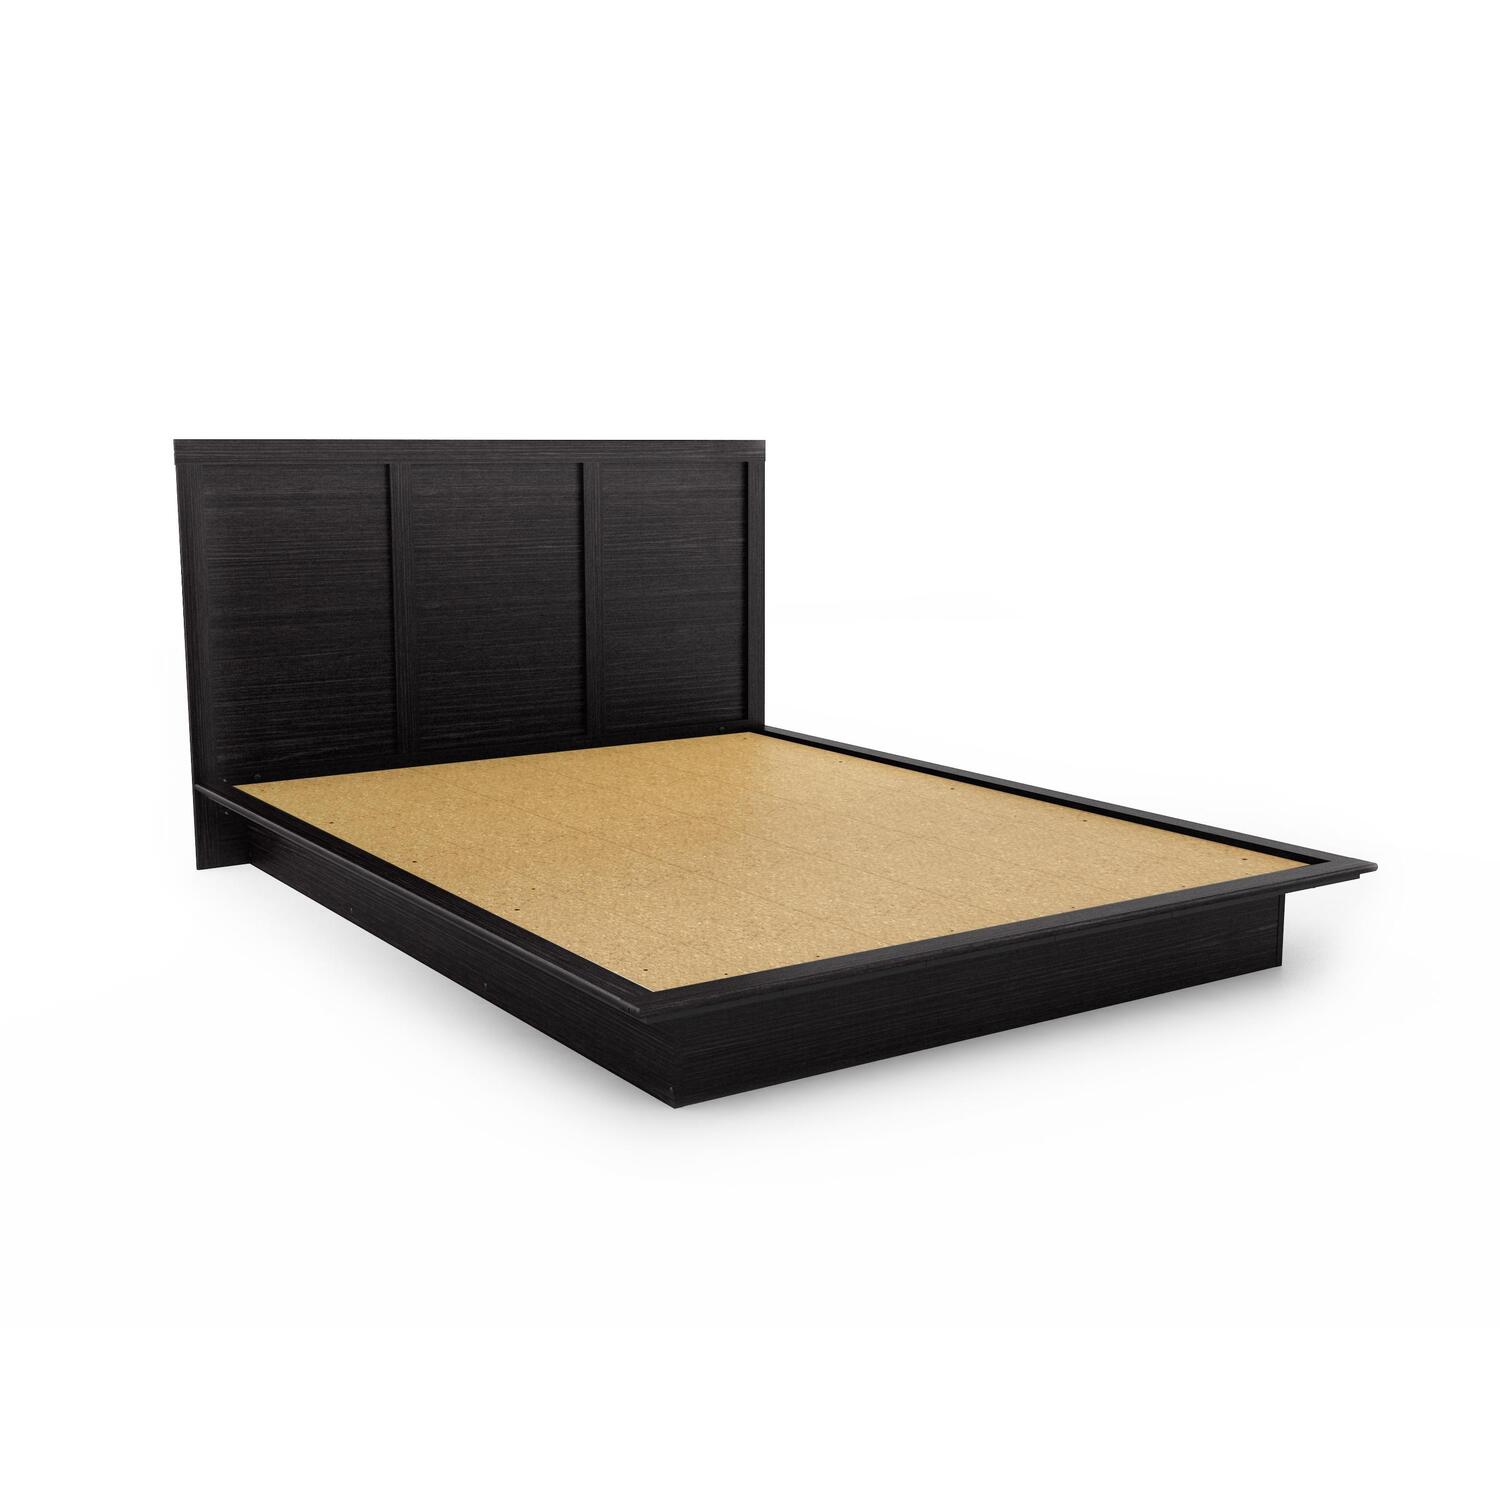 How To Build A Platform Bed King Size | Search Results | DIY ...